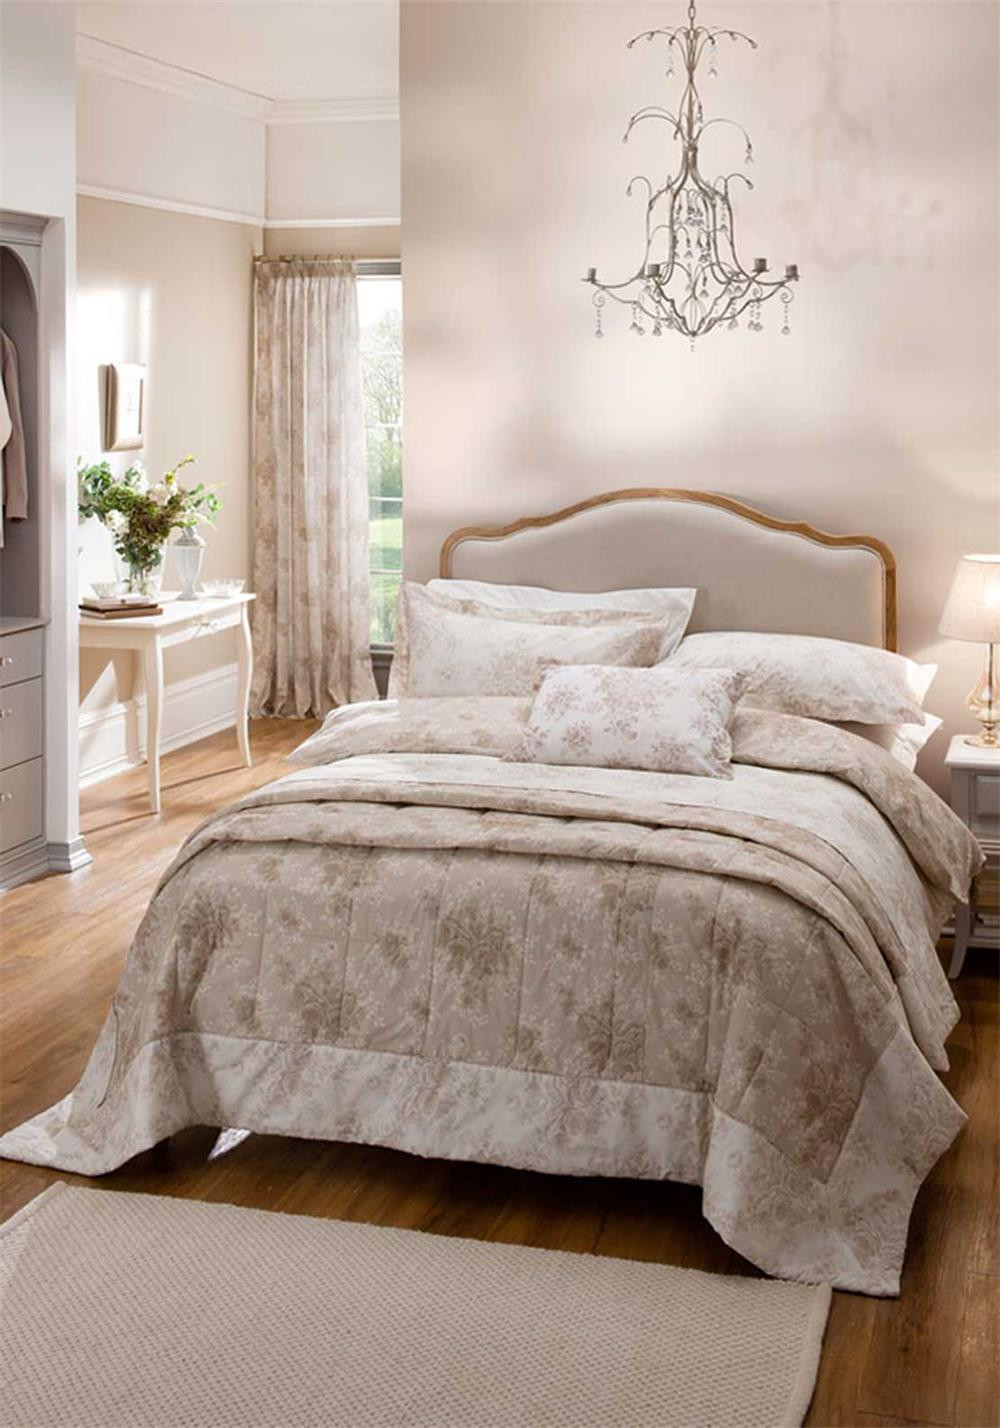 Dorma Rose Toile Duvet Cover Set, Natural